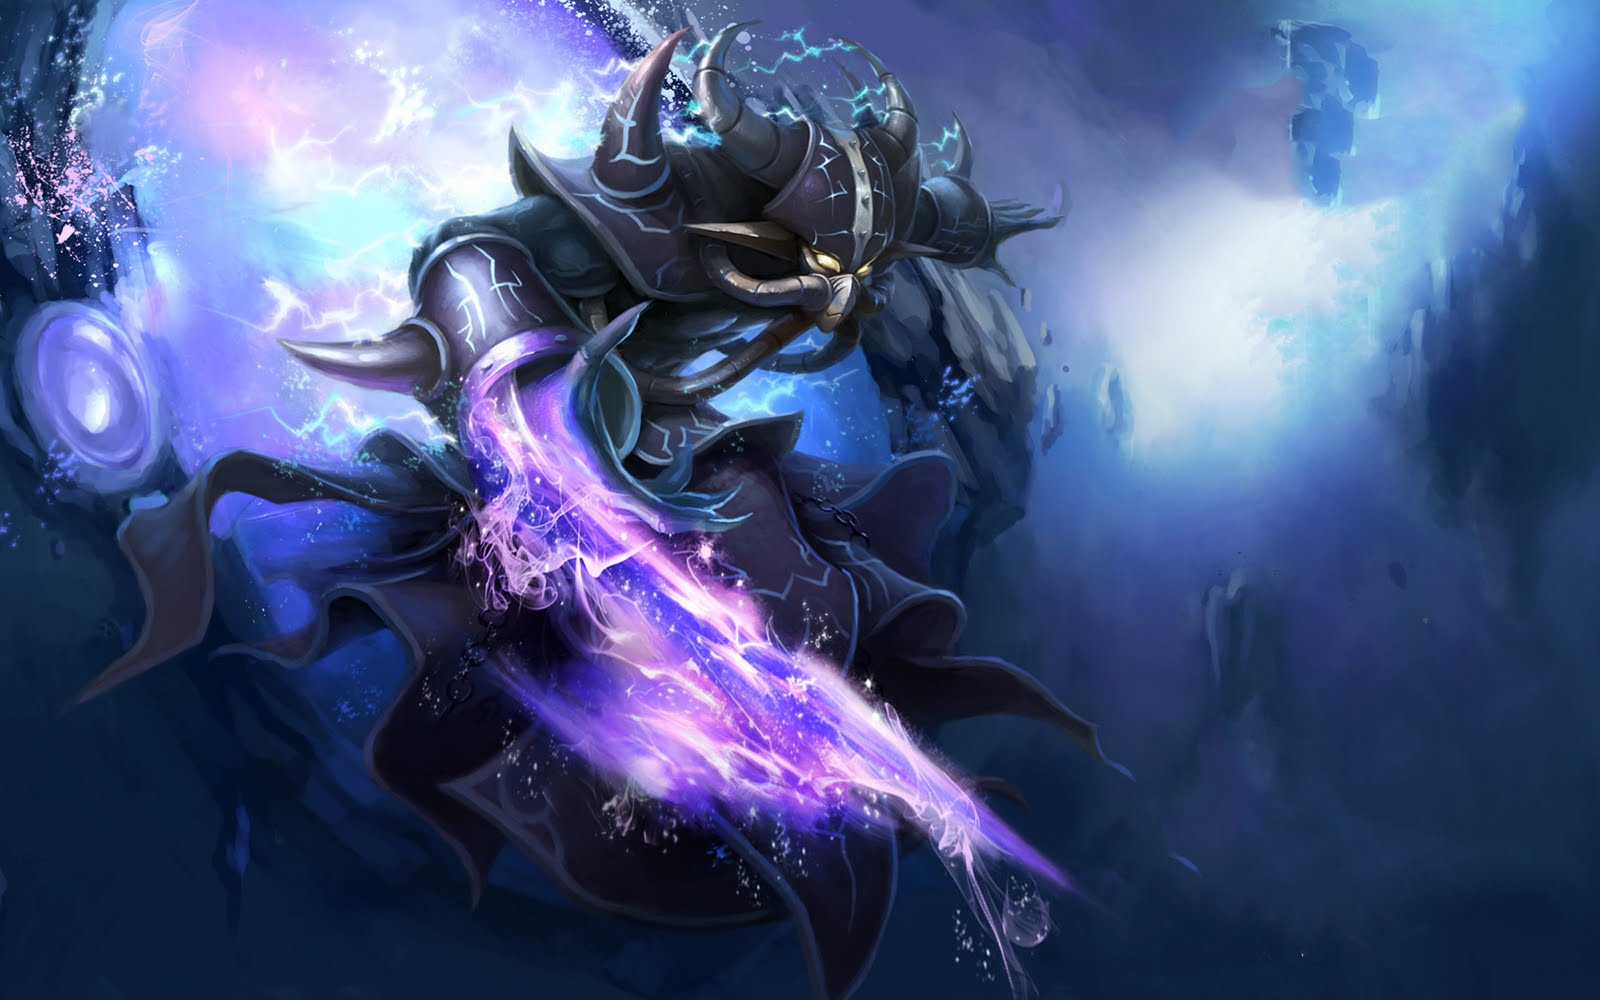 http://1.bp.blogspot.com/-Bq2WJUd9dVA/TsExDkE7K-I/AAAAAAAABmg/_oMSozaxv00/s1600/league_of_legends_wallpaper_i_go_mid.jpg